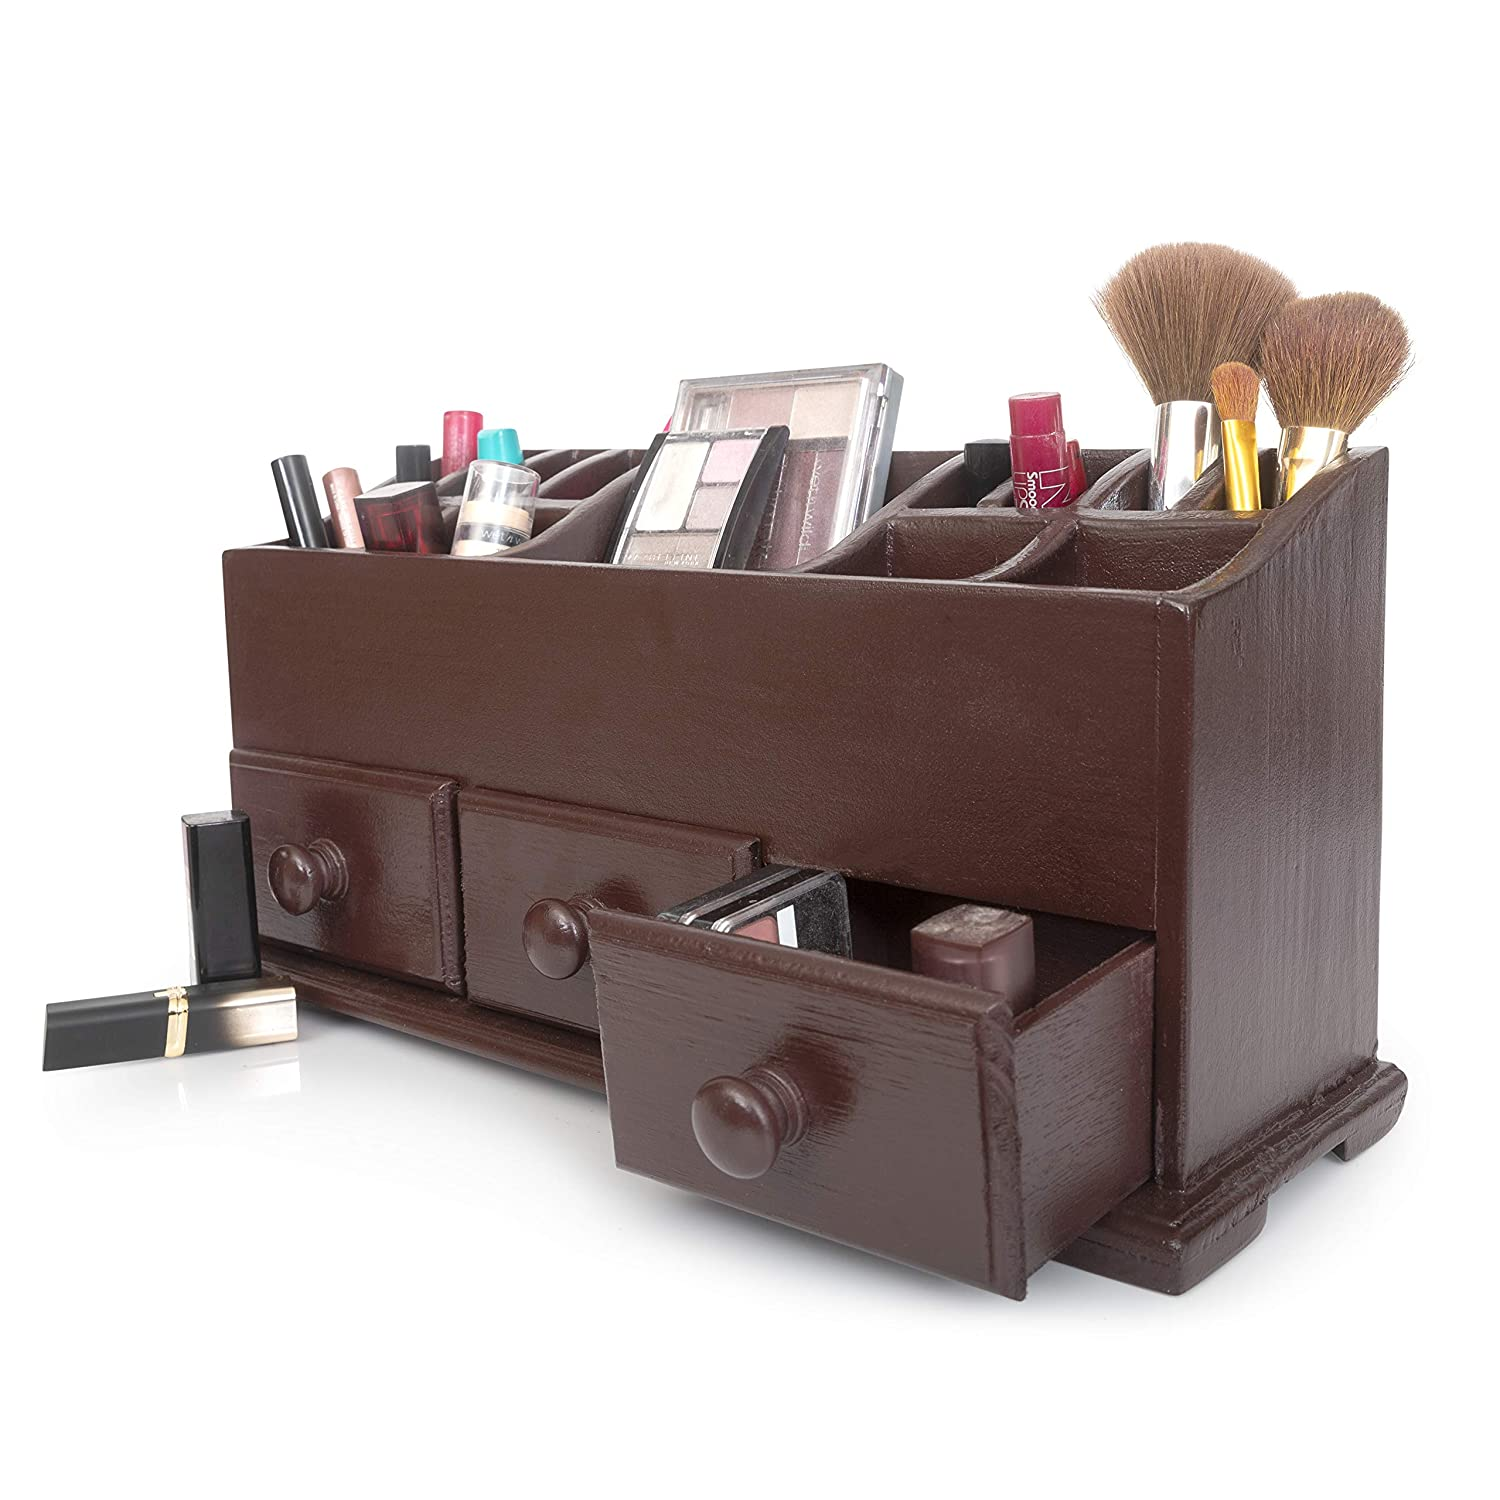 Vanity Drawer Beauty Organizer 3 Drawers - Wooden Cosmetic Storage Box for Neat & Organize Storing of Makeup Tools, Small Accessories at Home & Office Vanities & Bathroom Counter-top (Dark Brown)